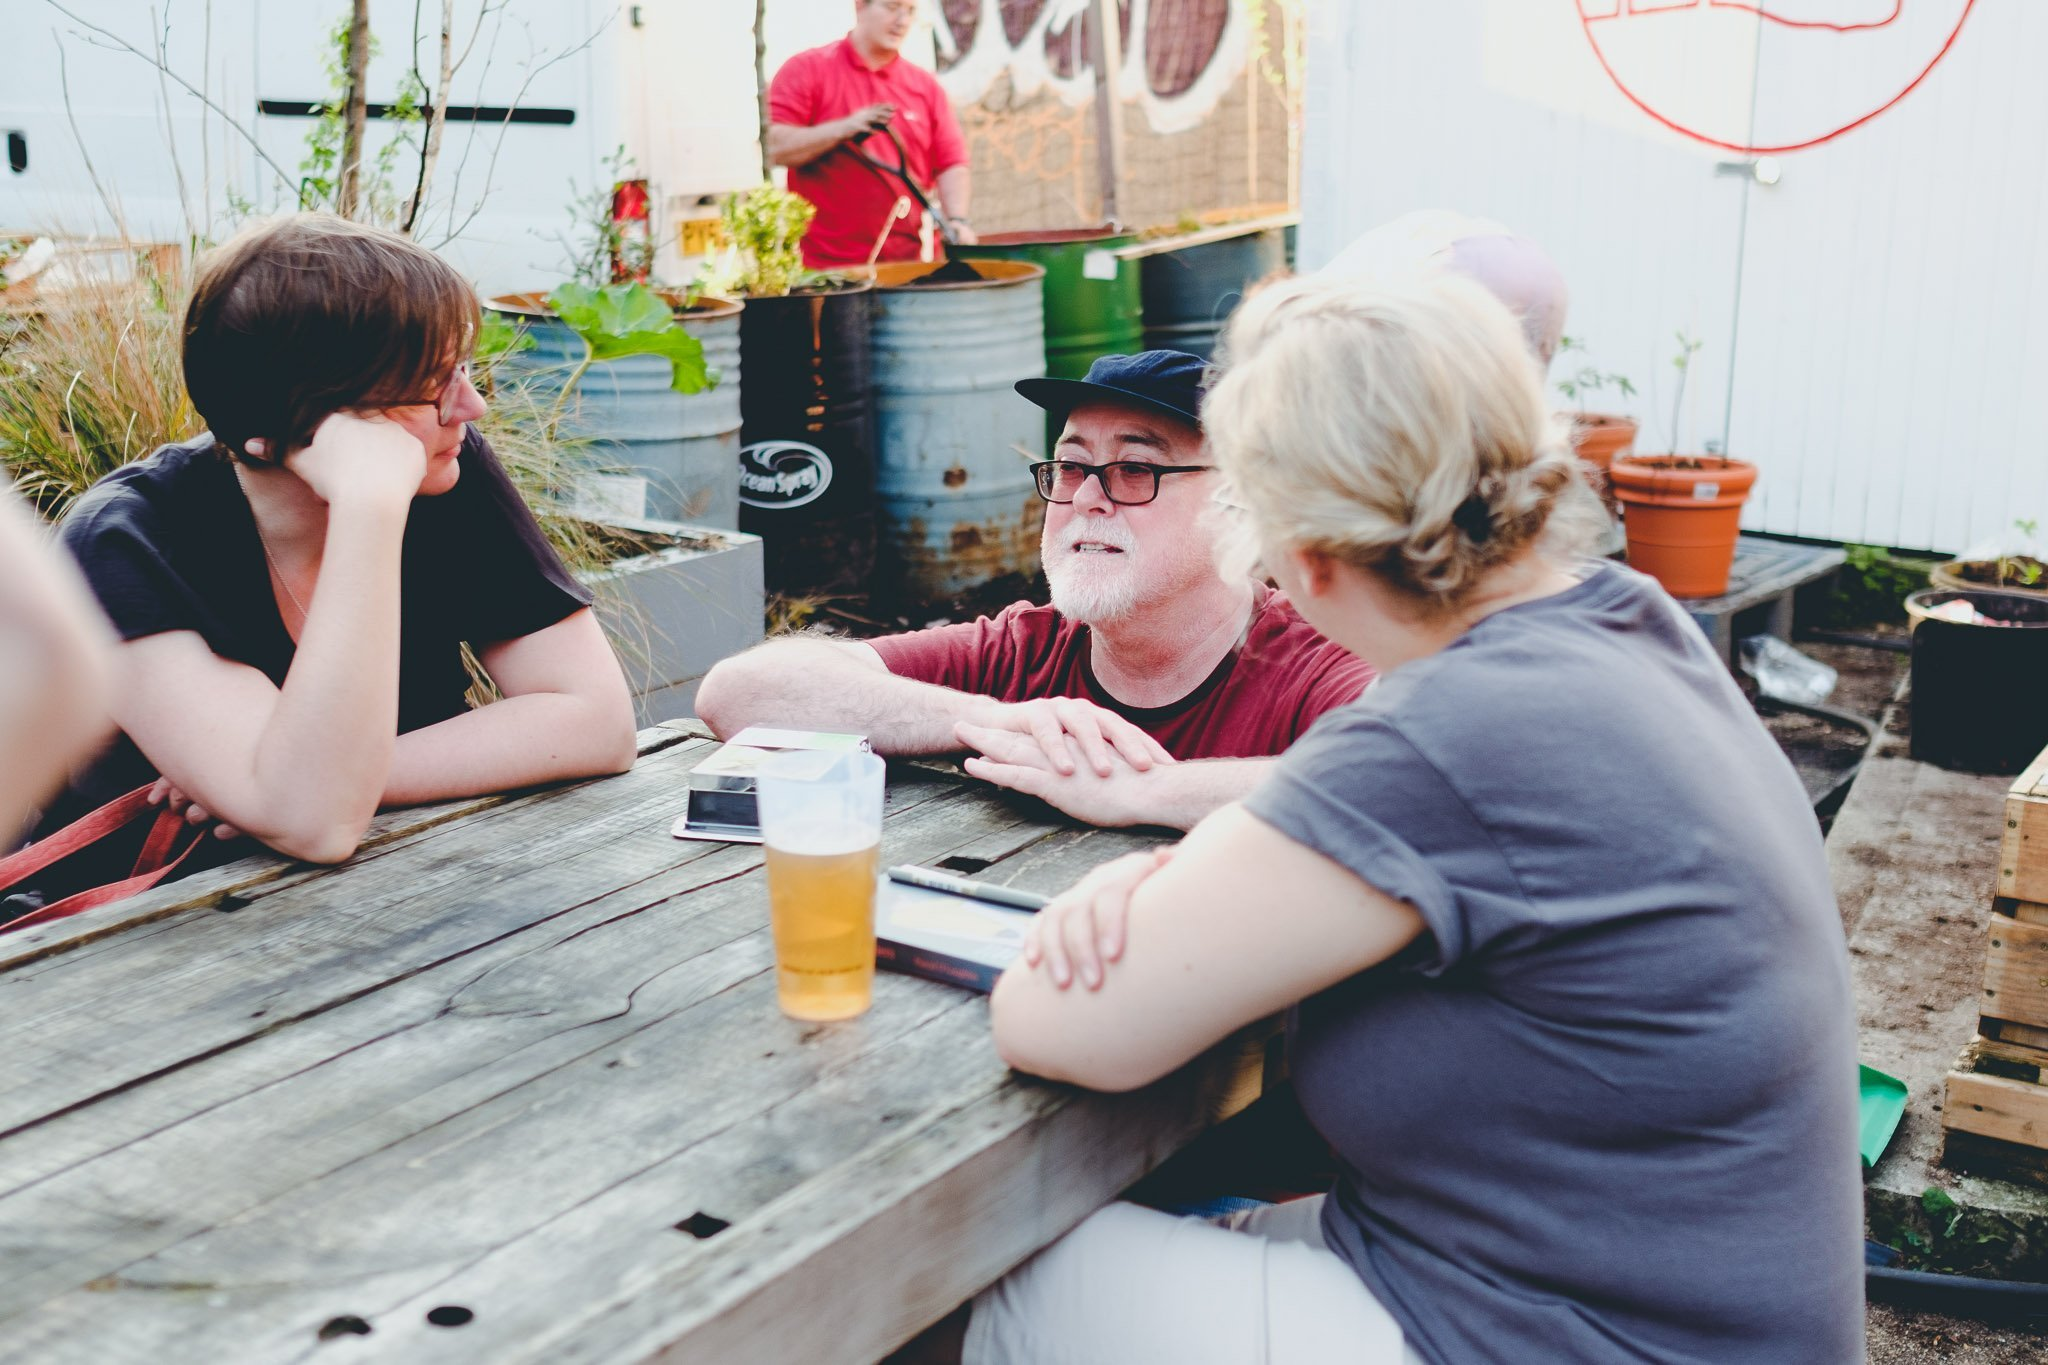 Pascal O'Loughin in talks with fans at 40FT Brewery in Dalston London